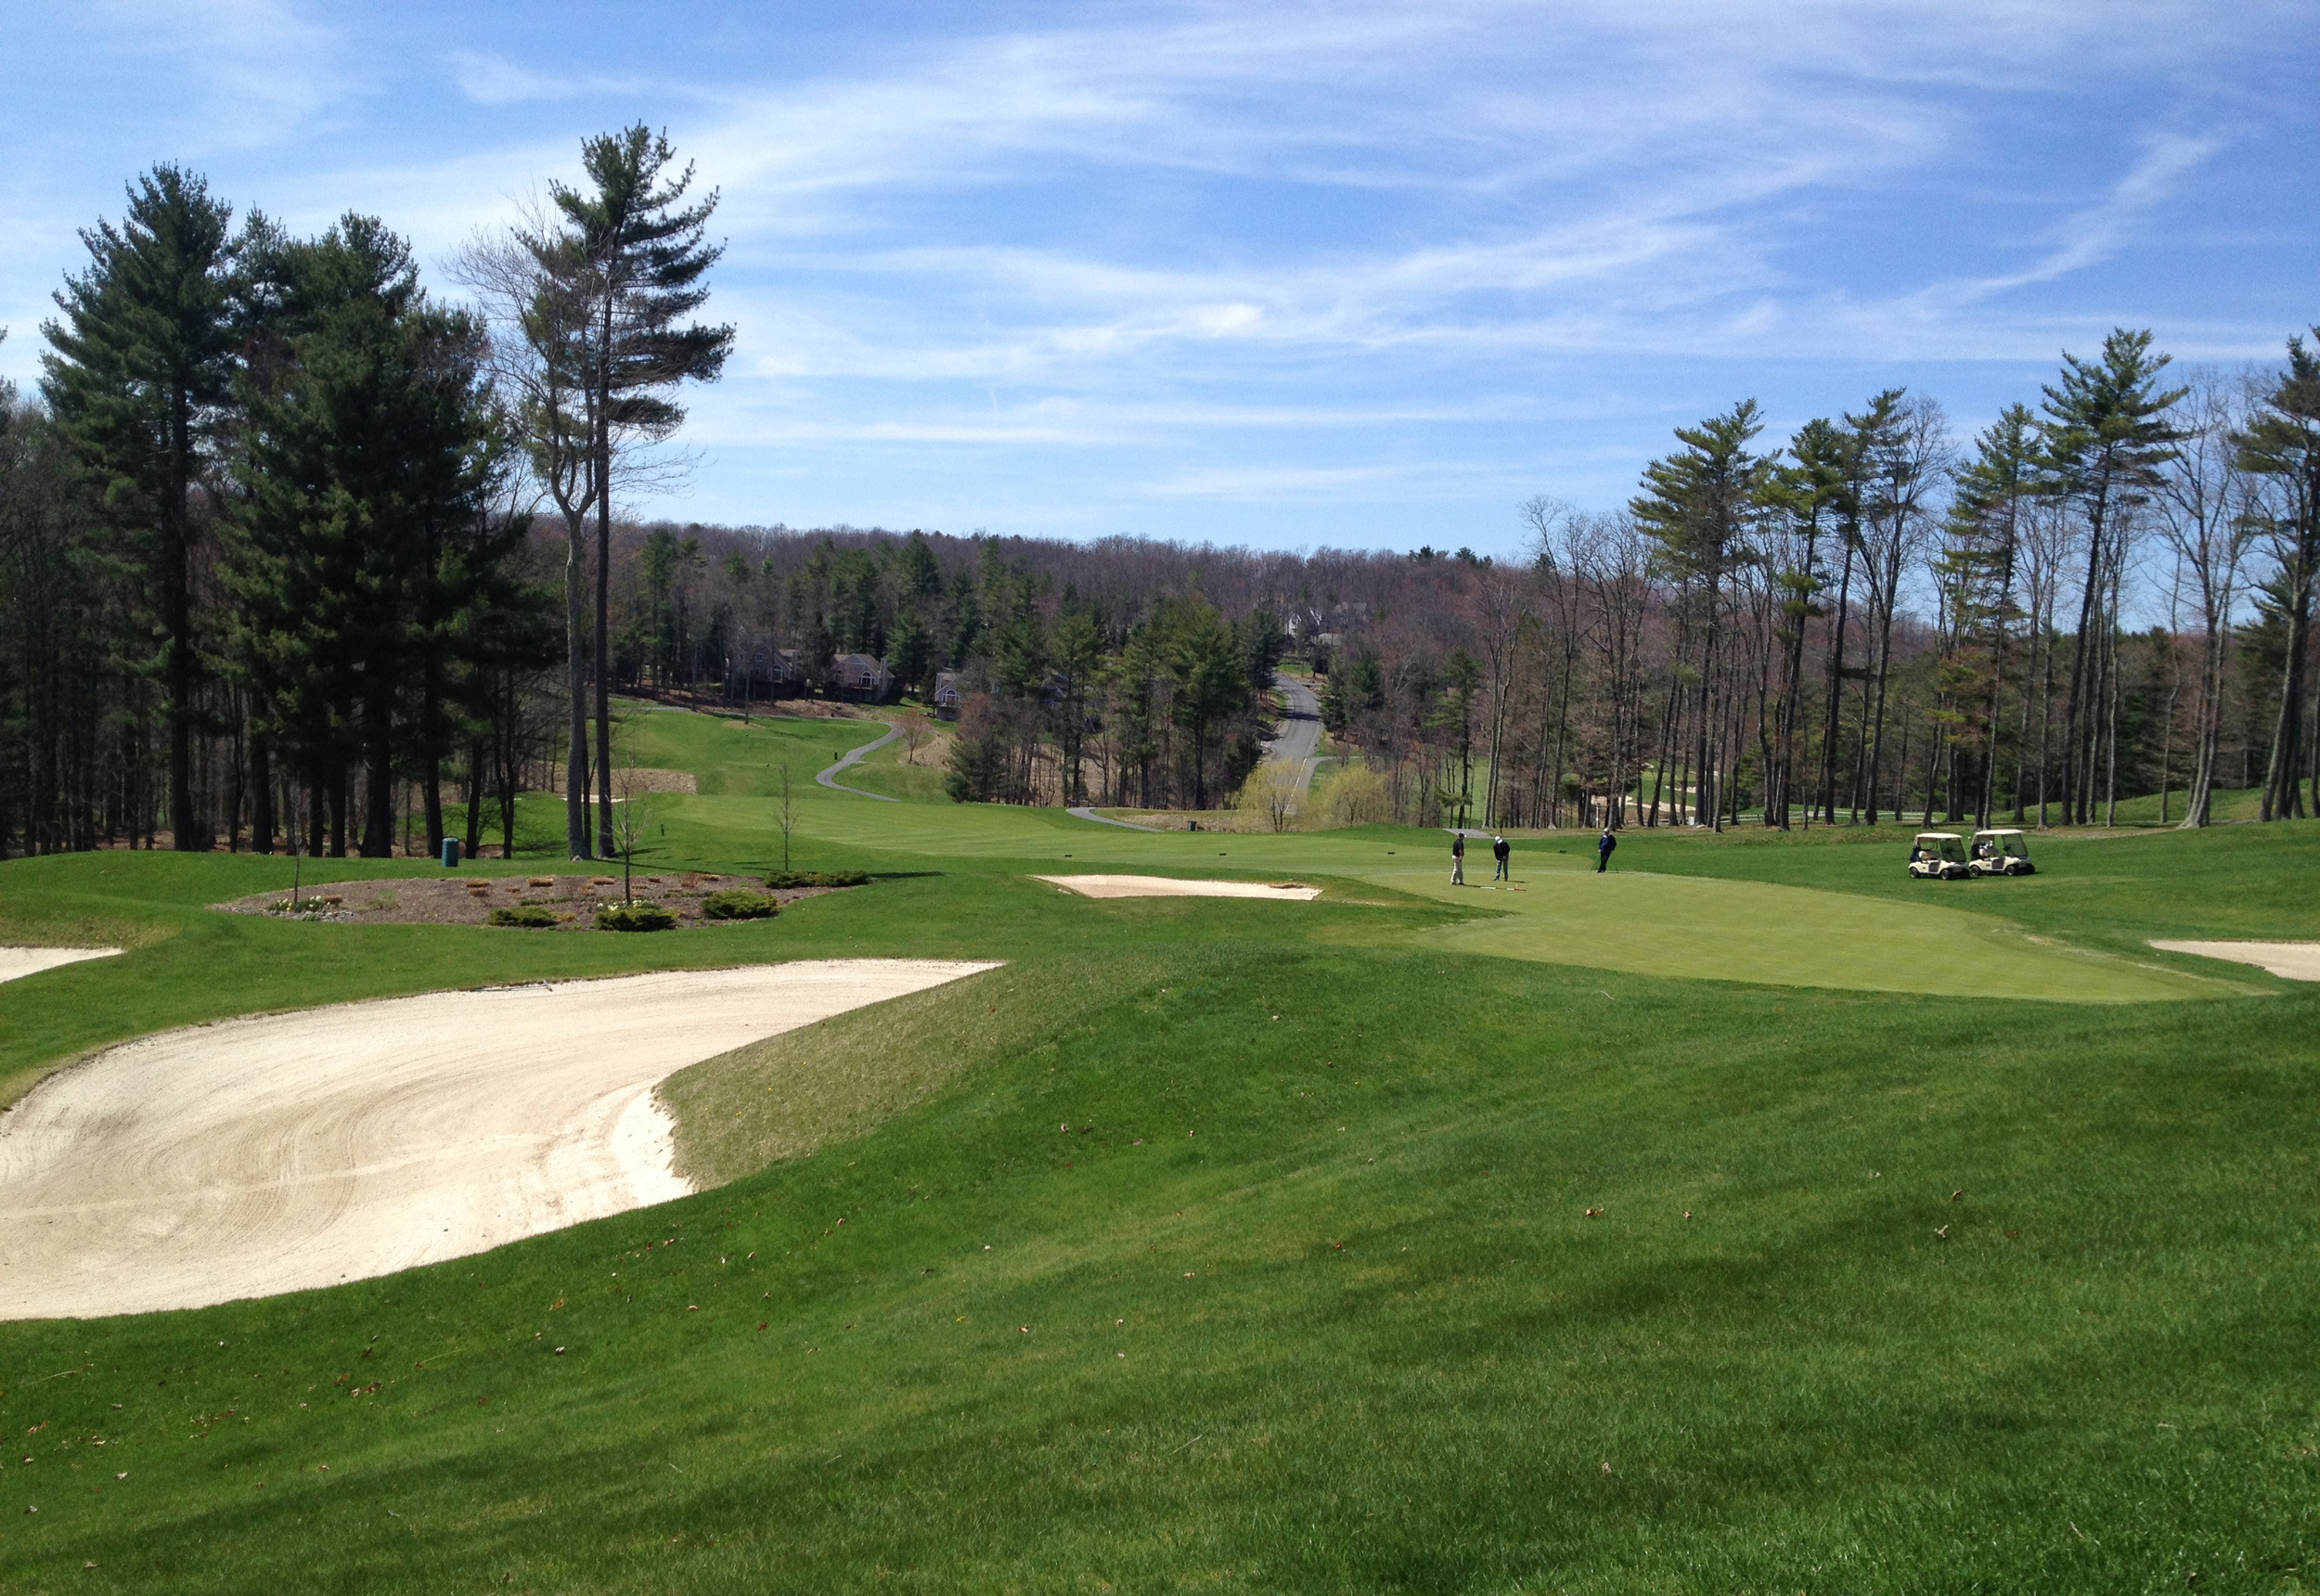 GOLF: Woodloch Springs Golf Course in Lackawaxen, PA